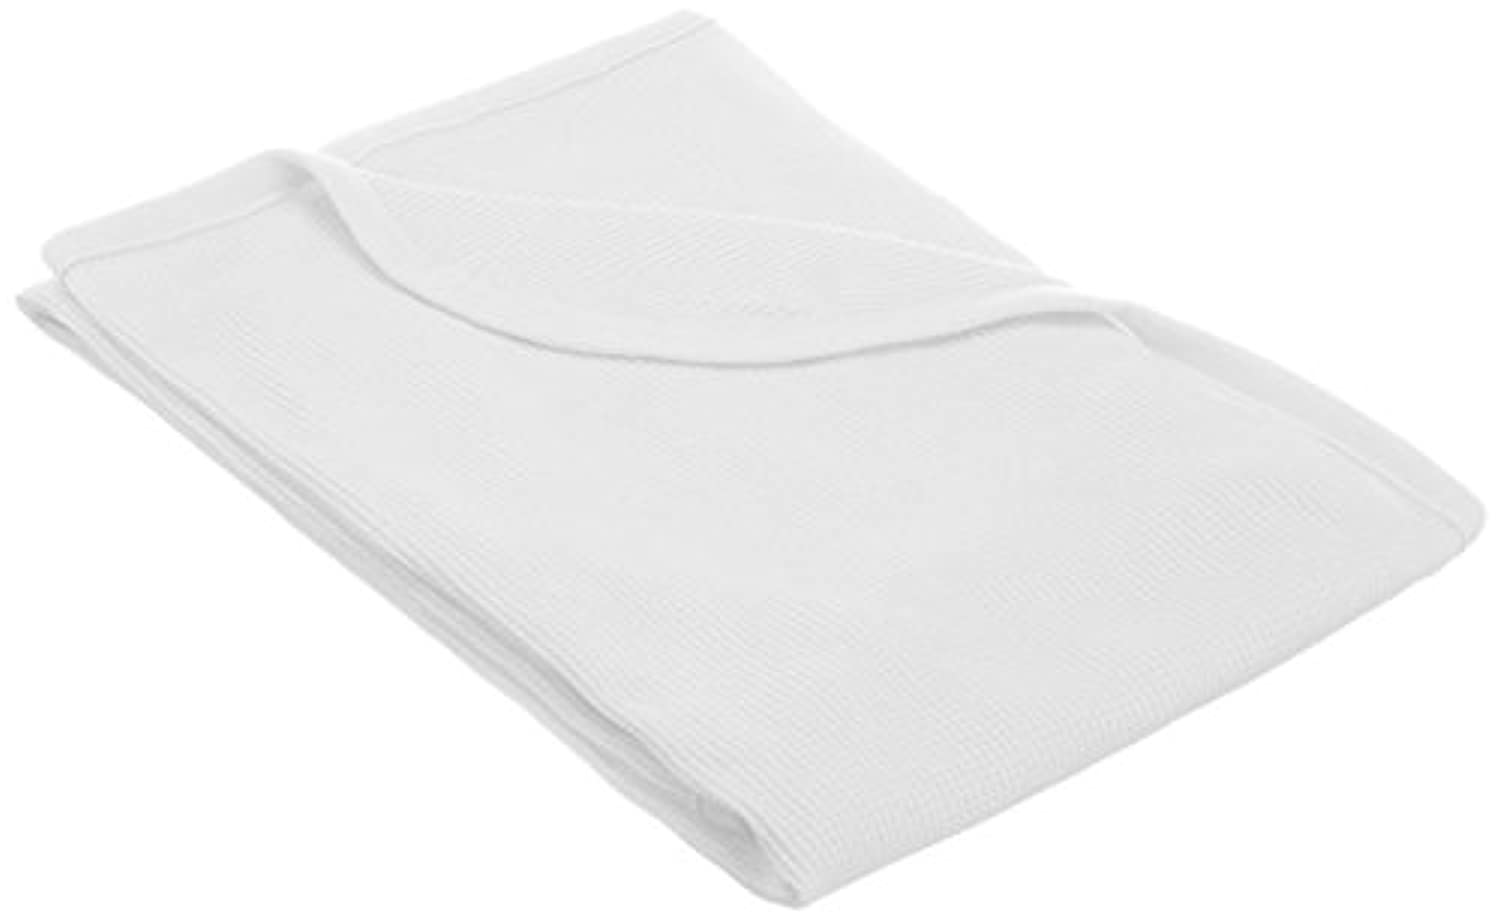 TL Care 100% Cotton Swaddle/Thermal Blanket, White by TL Care